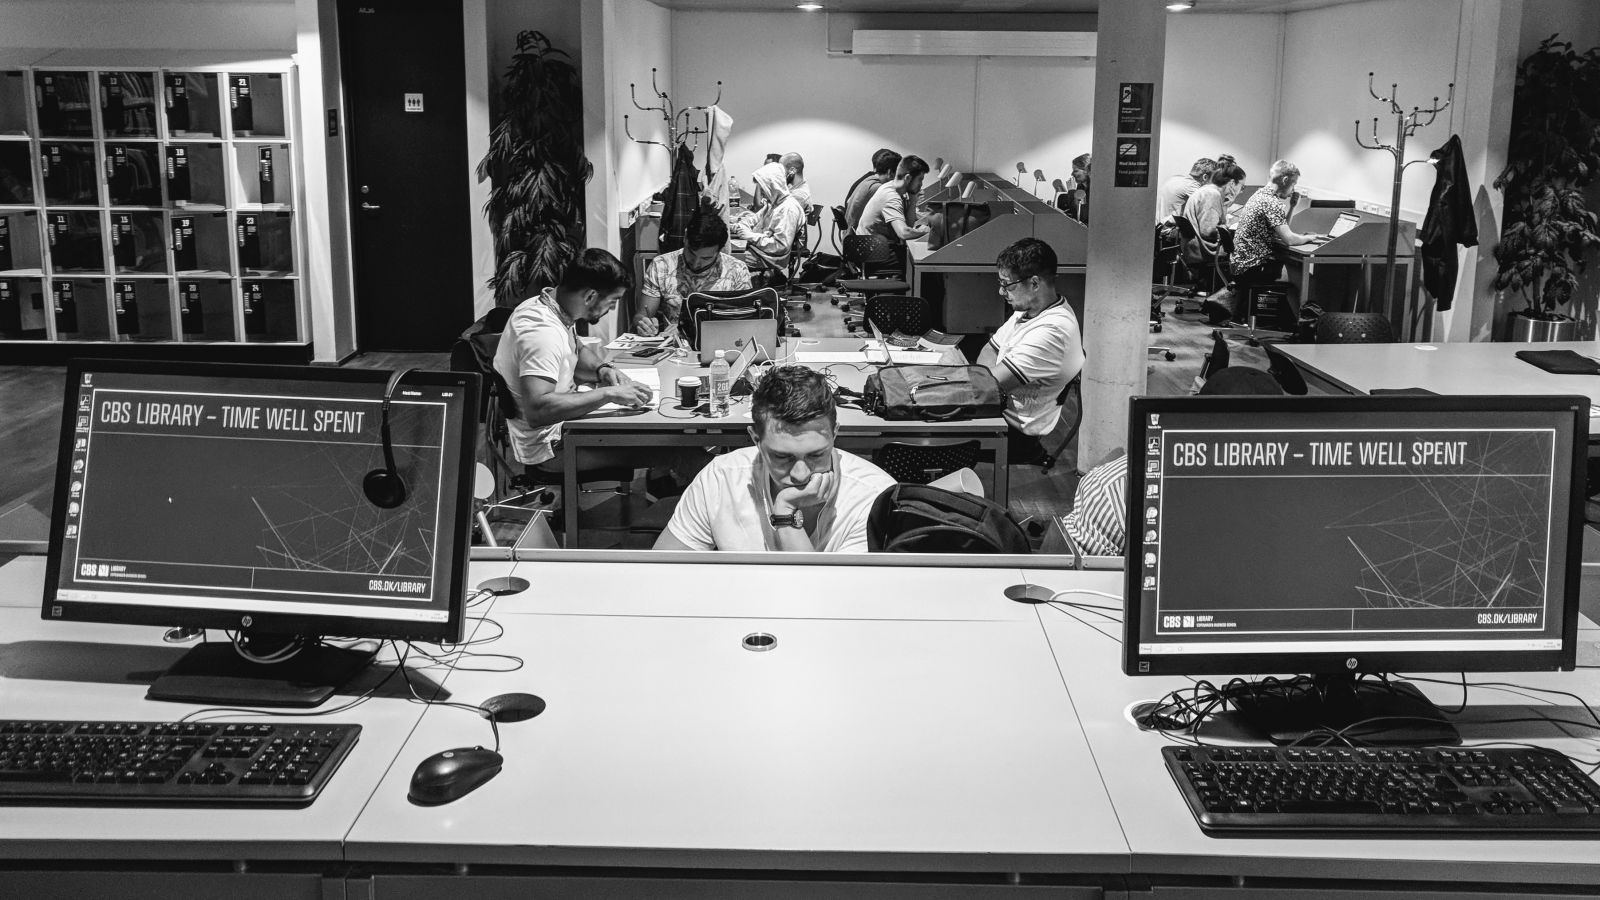 The atmosphere at CBS' campus: We chose the photo from the library because it precisely encapsulates the atmosphere when students are concentrating and preparing for their exams. We also found the photo to be very stylish andelegant, it draws the viewer in and results in them looking at it for a while.(Photo by Niels Jakob Kyhl Jørgensen)